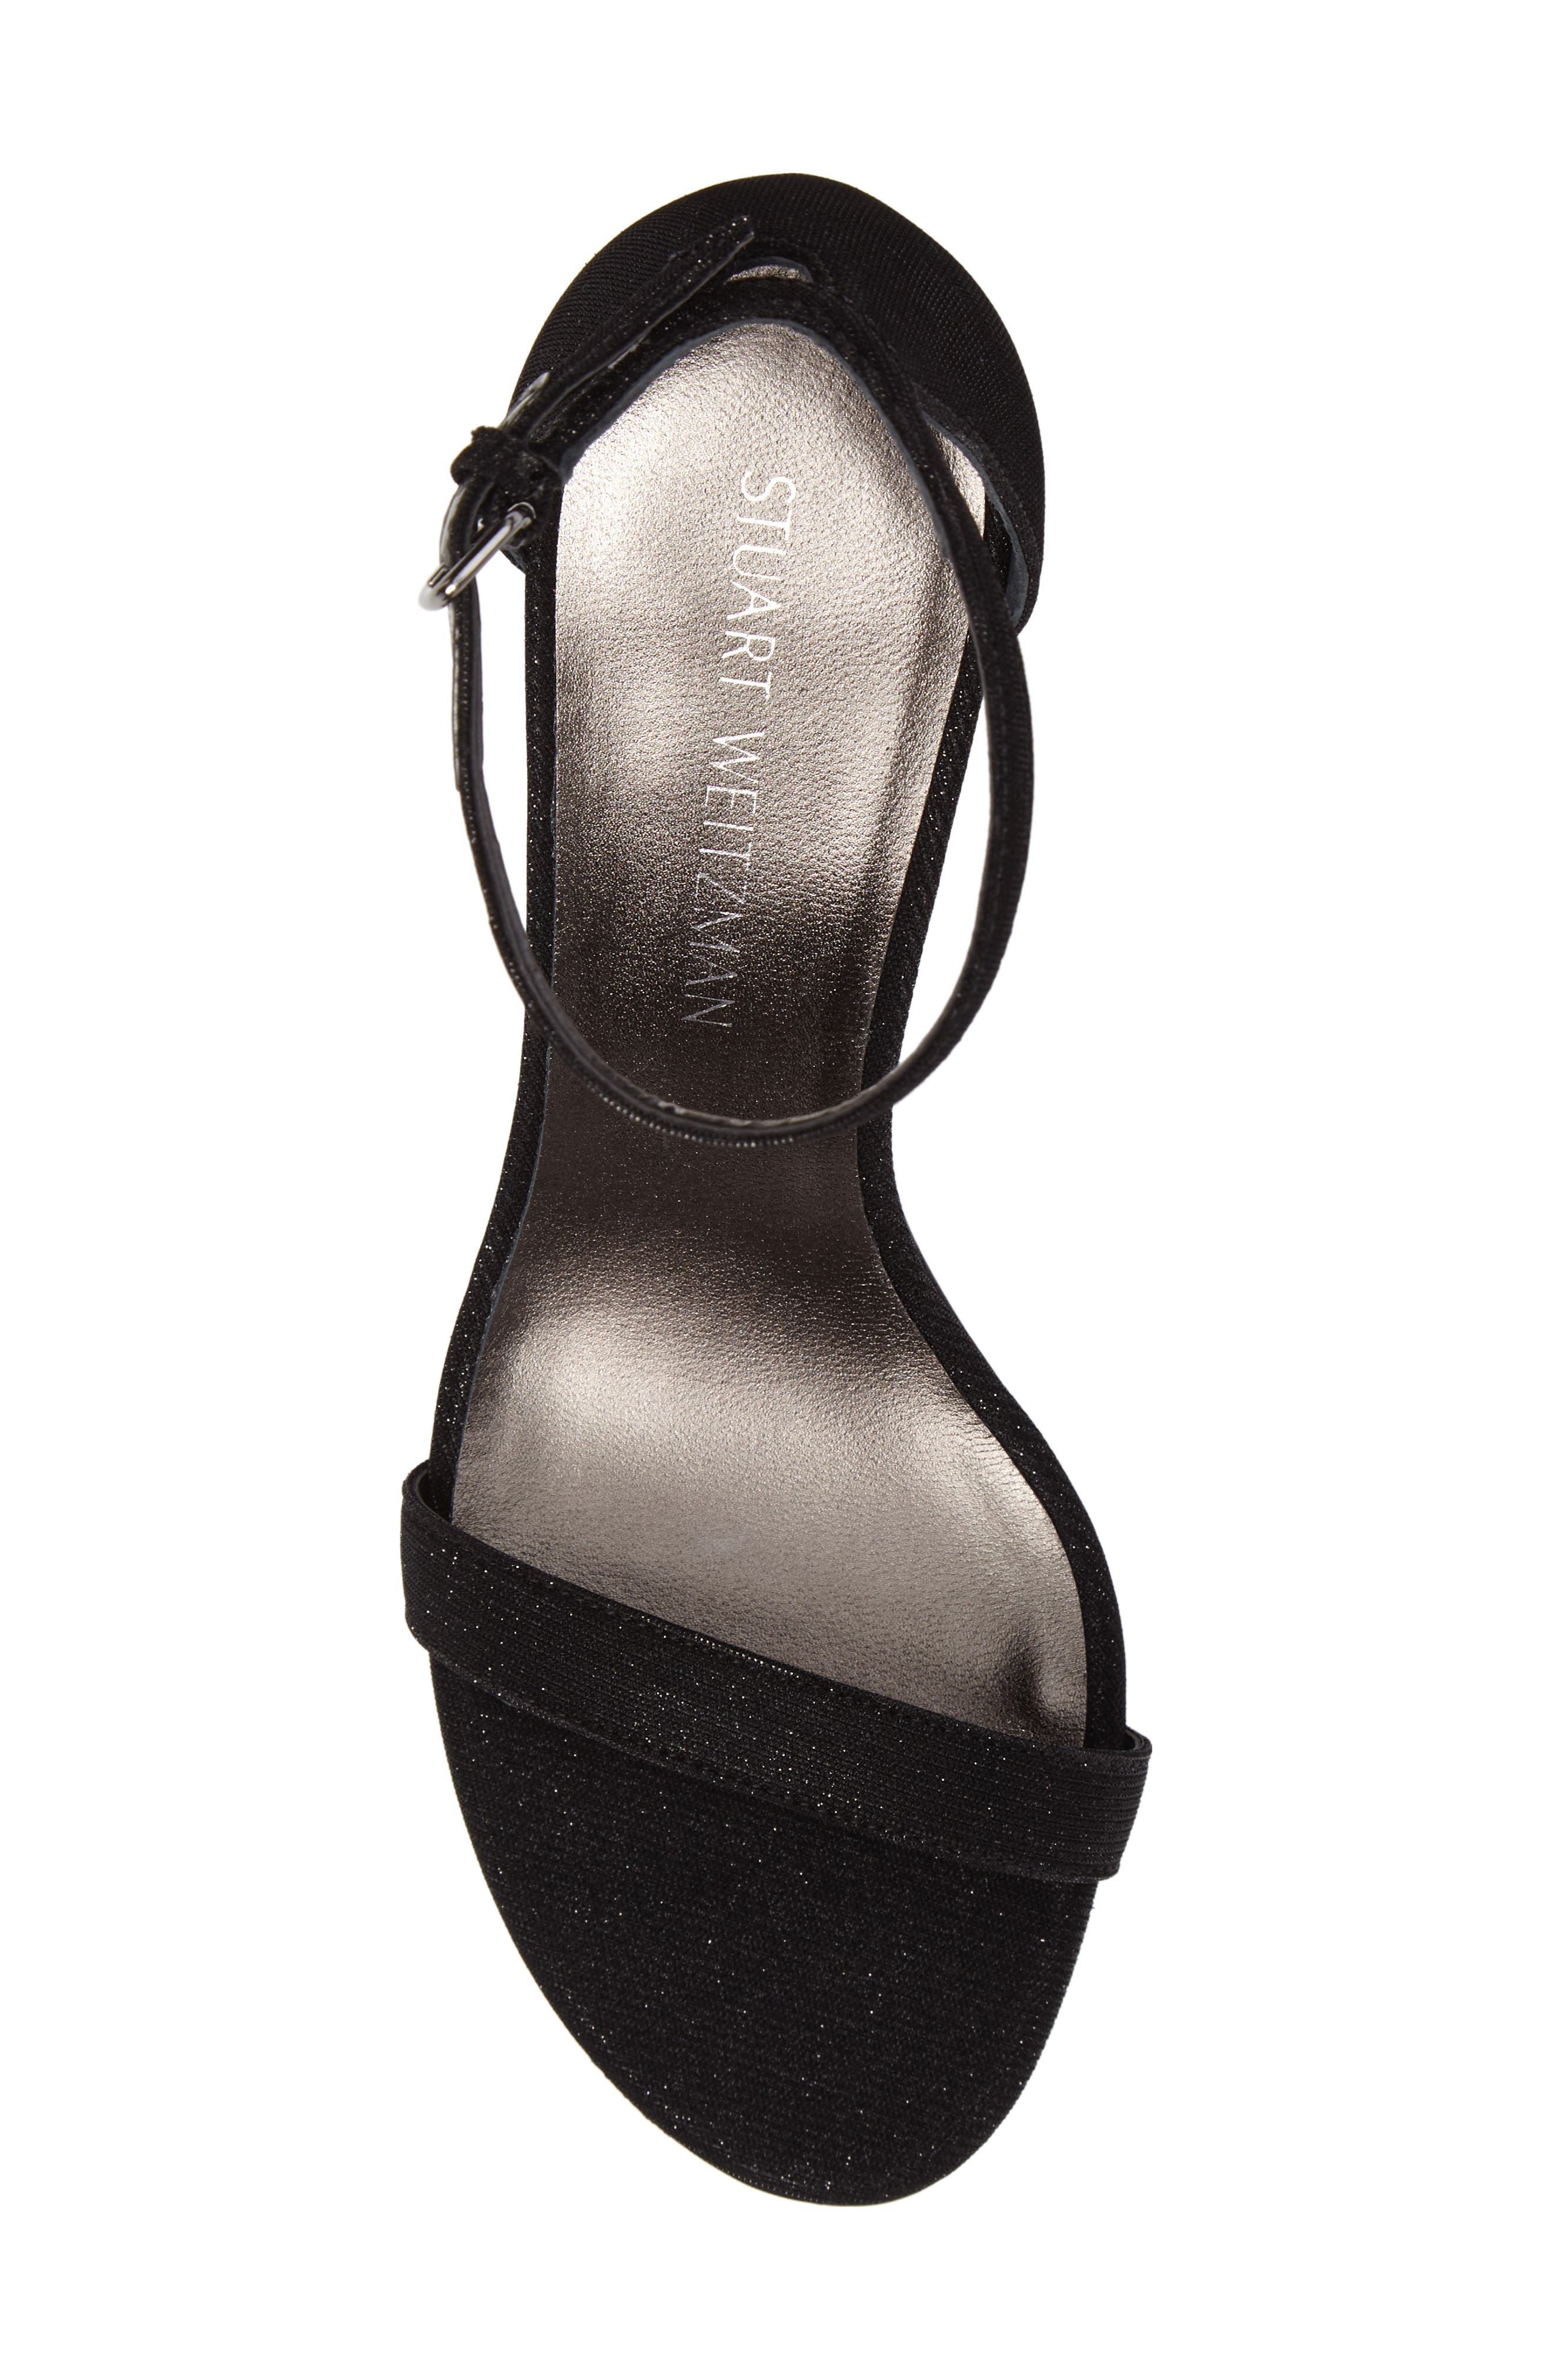 'Nunaked' Leather Ankle Strap Sandal,                             Alternate thumbnail 6, color,                             Nero Nocturn Nappa